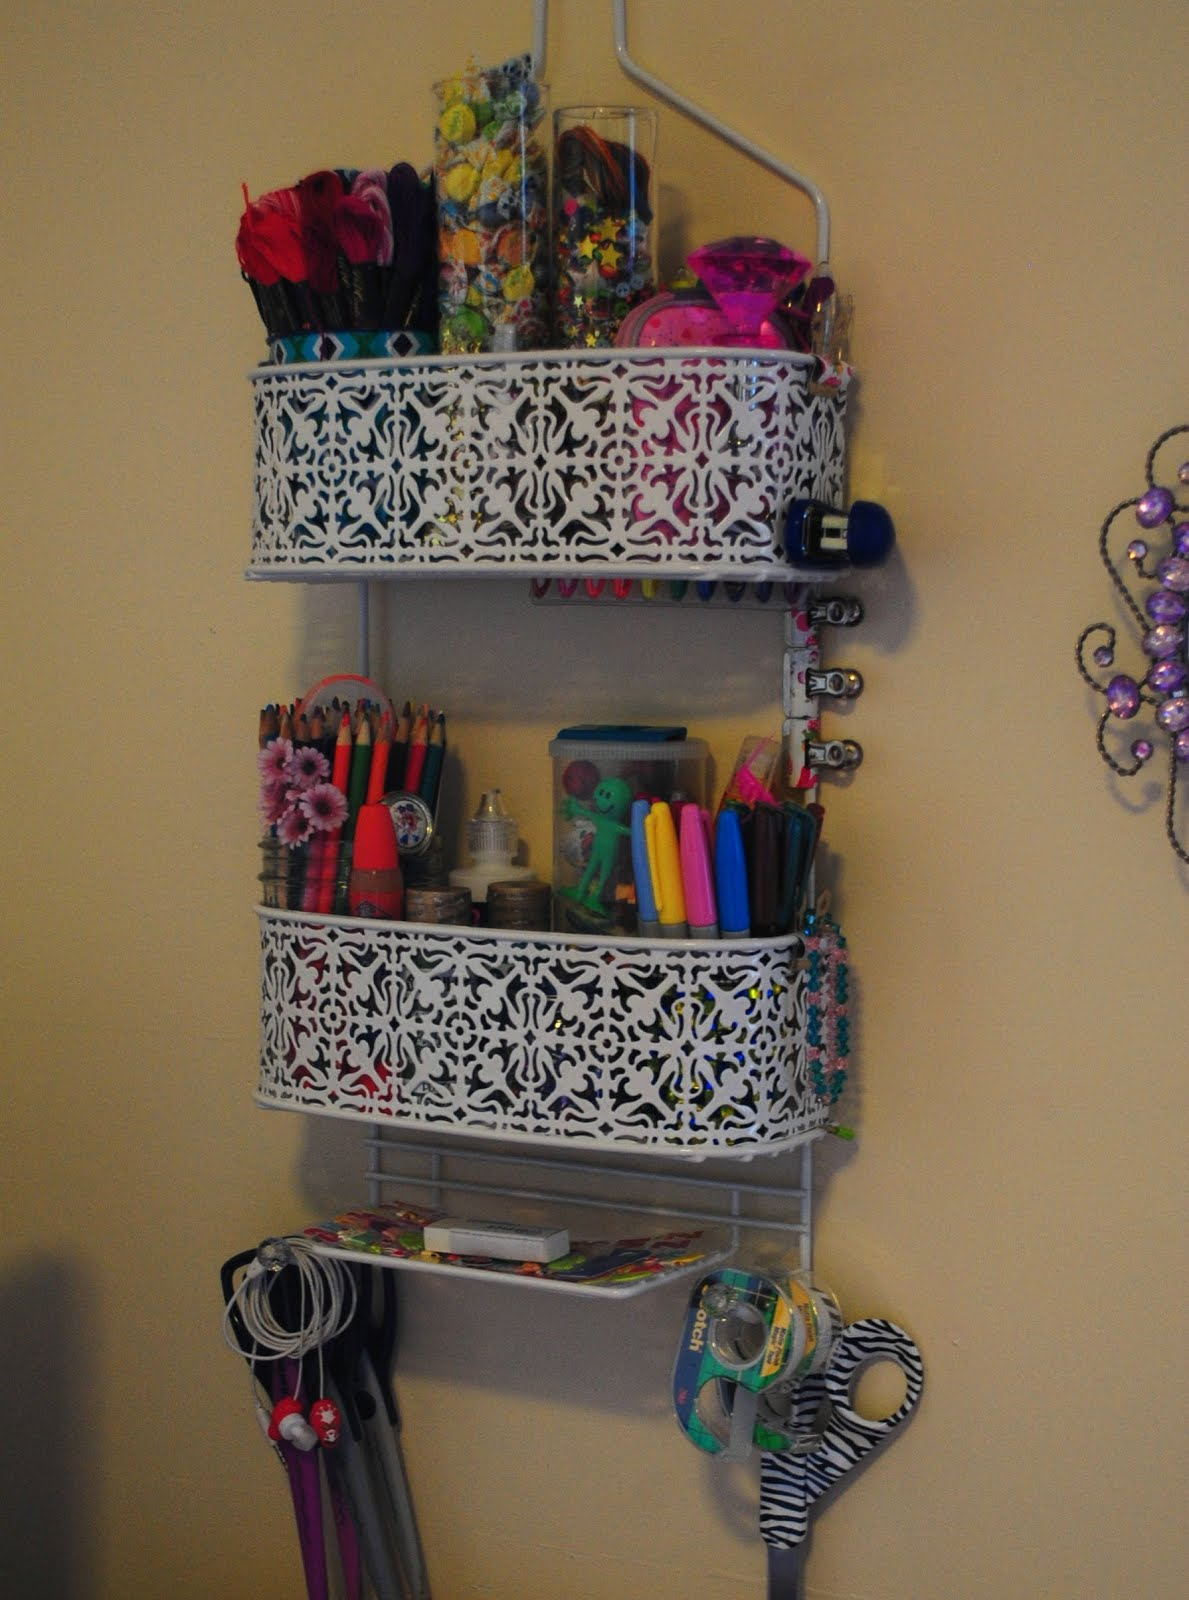 Shower Caddy Storage To Simplify The Home Diy Craft Projects